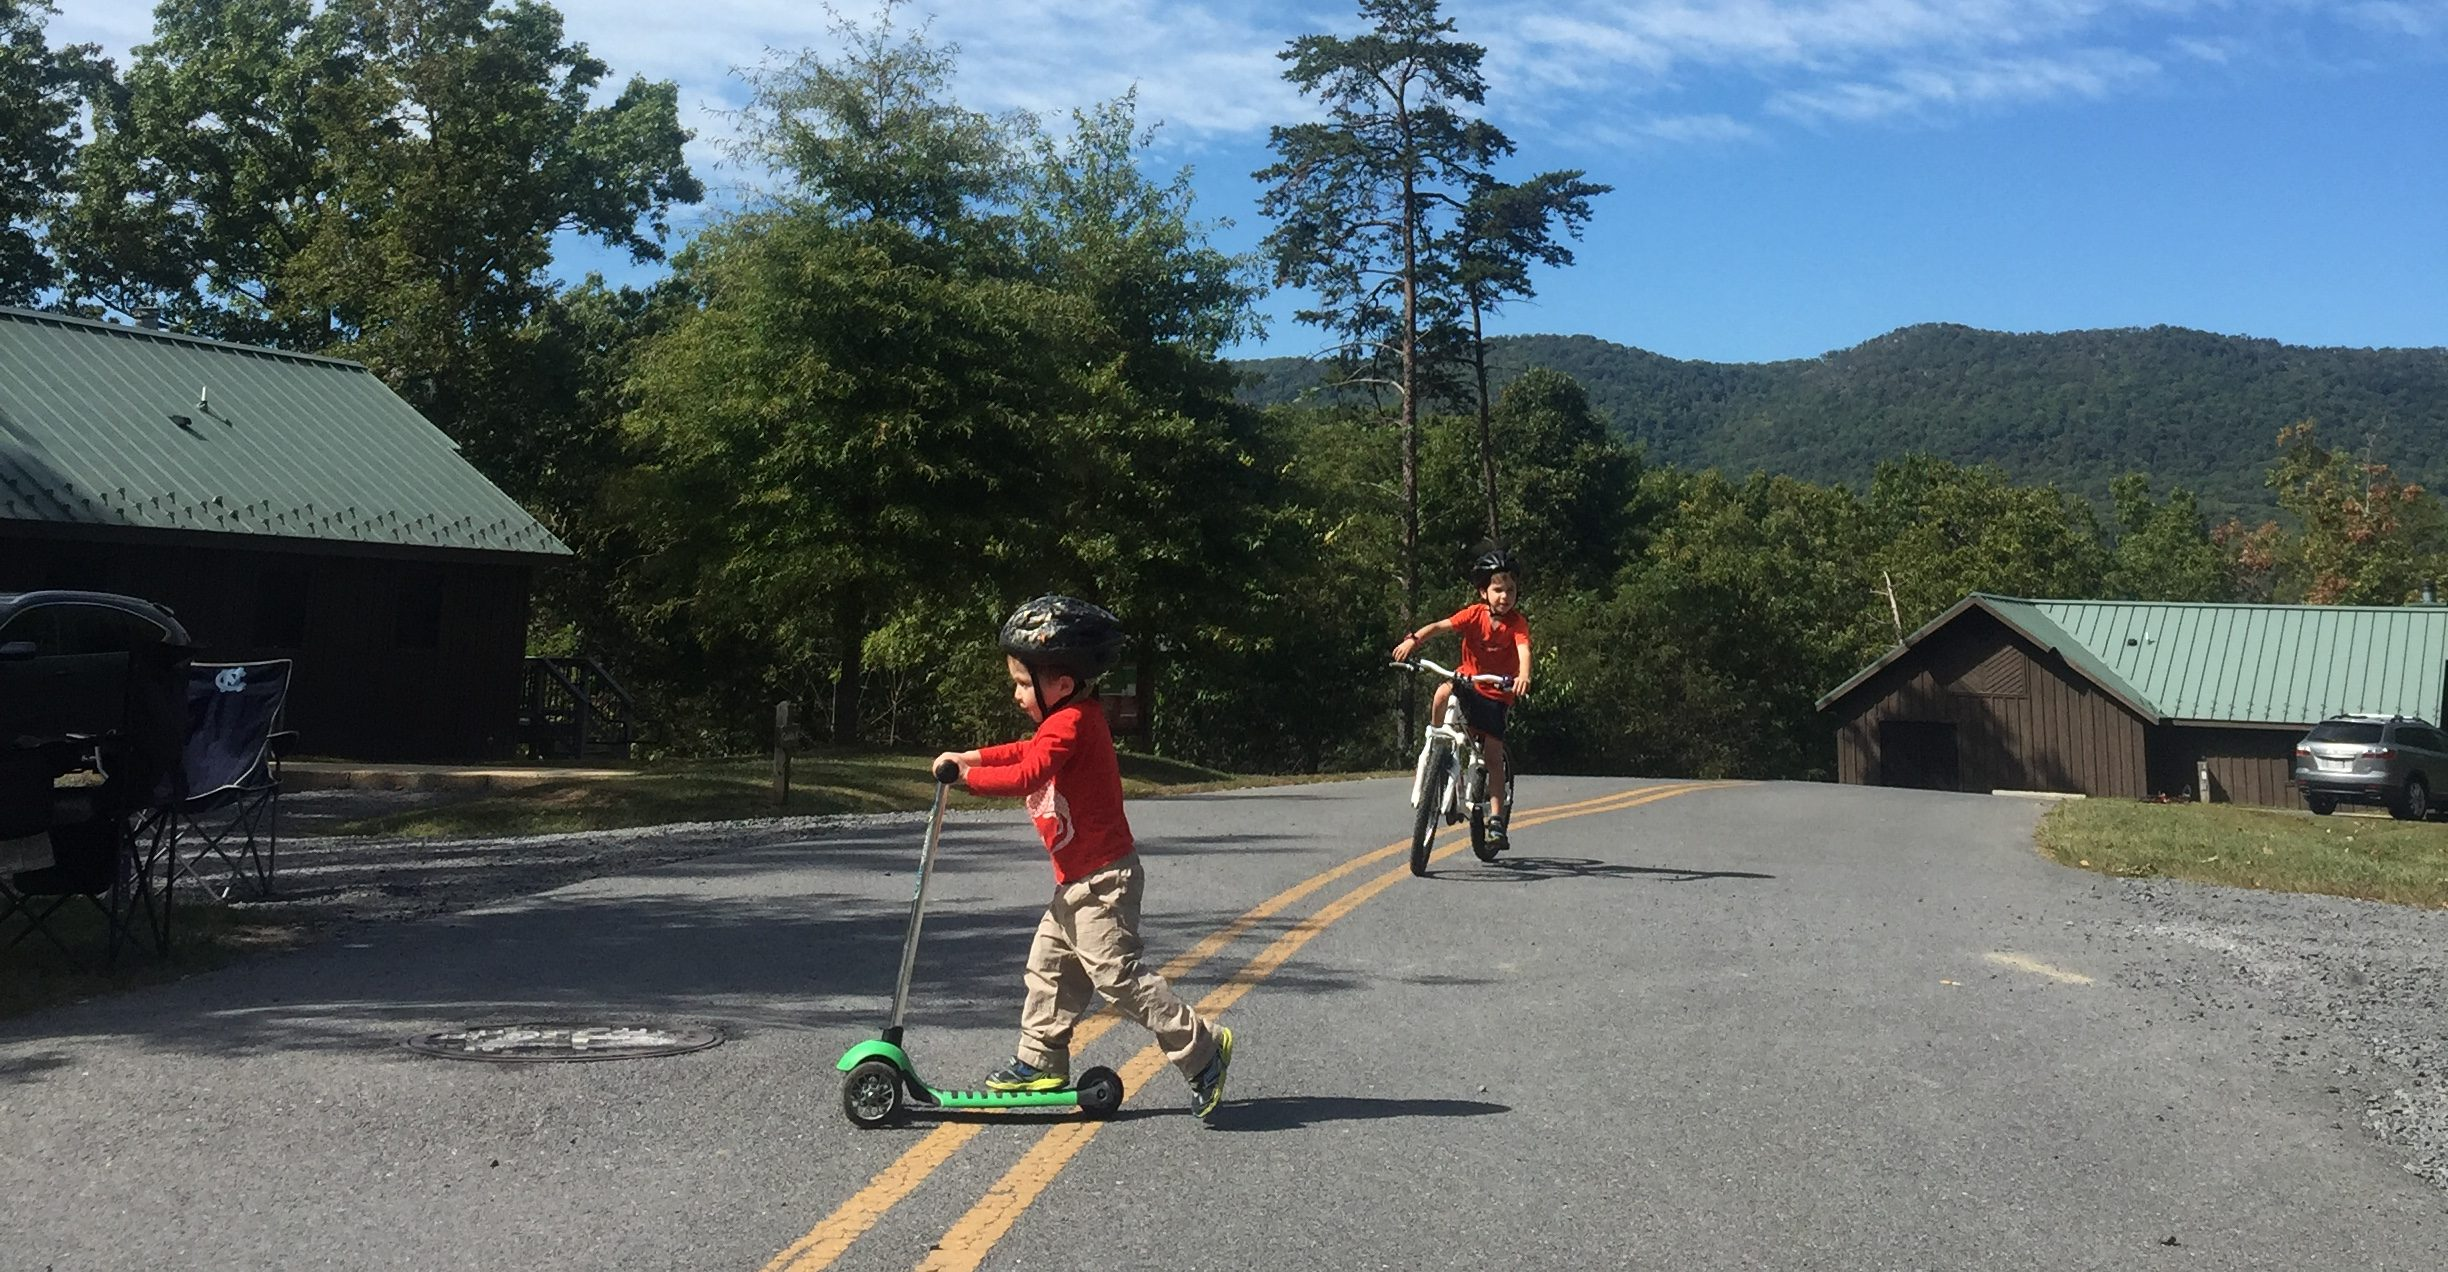 Austin and Tommy Brimley on their scooters during the last weekend before Shawn got sick